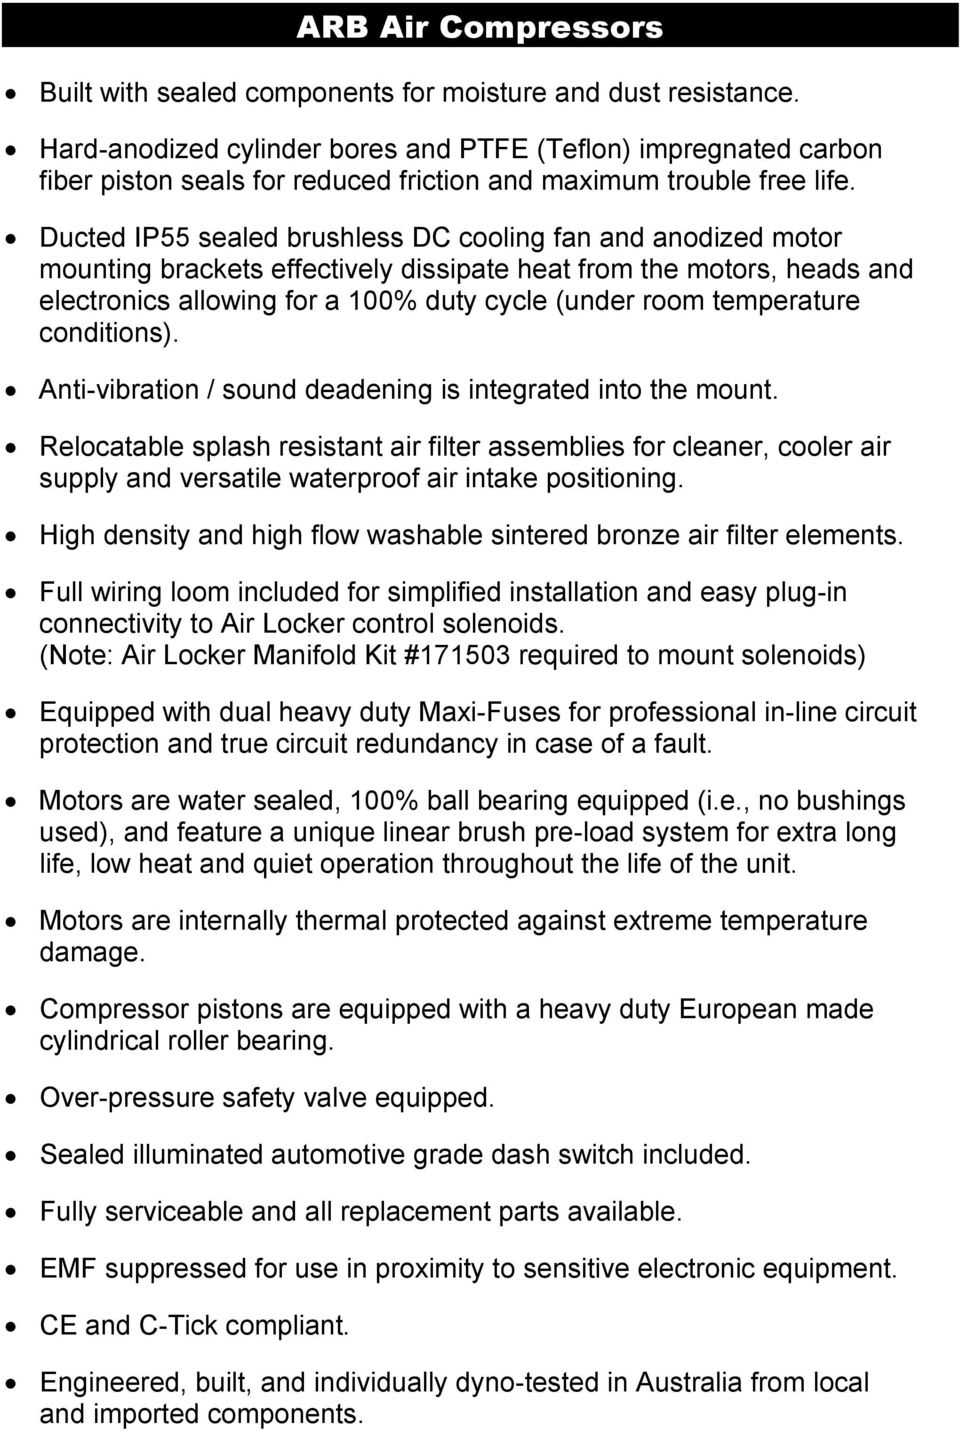 Product Release Ckmta12 24 Copyright 2011 By Arb Corporation Maxi Fuse Installed Wiring Harness Temperature Conditions Anti Vibration Sound Deadening Is Integrated Into The Mount